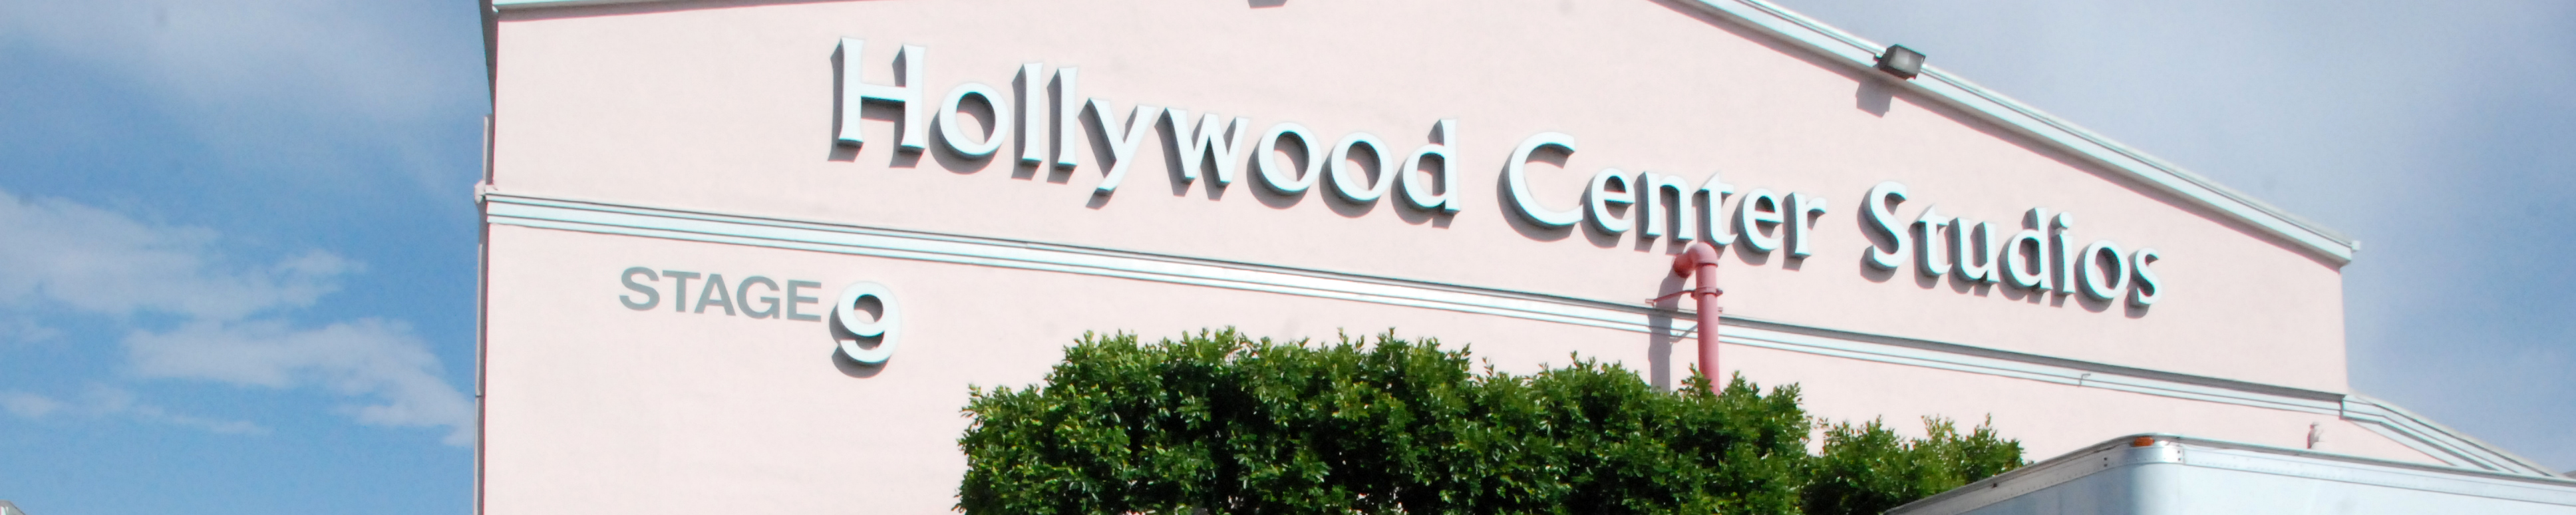 Hollywood Center Studios logo